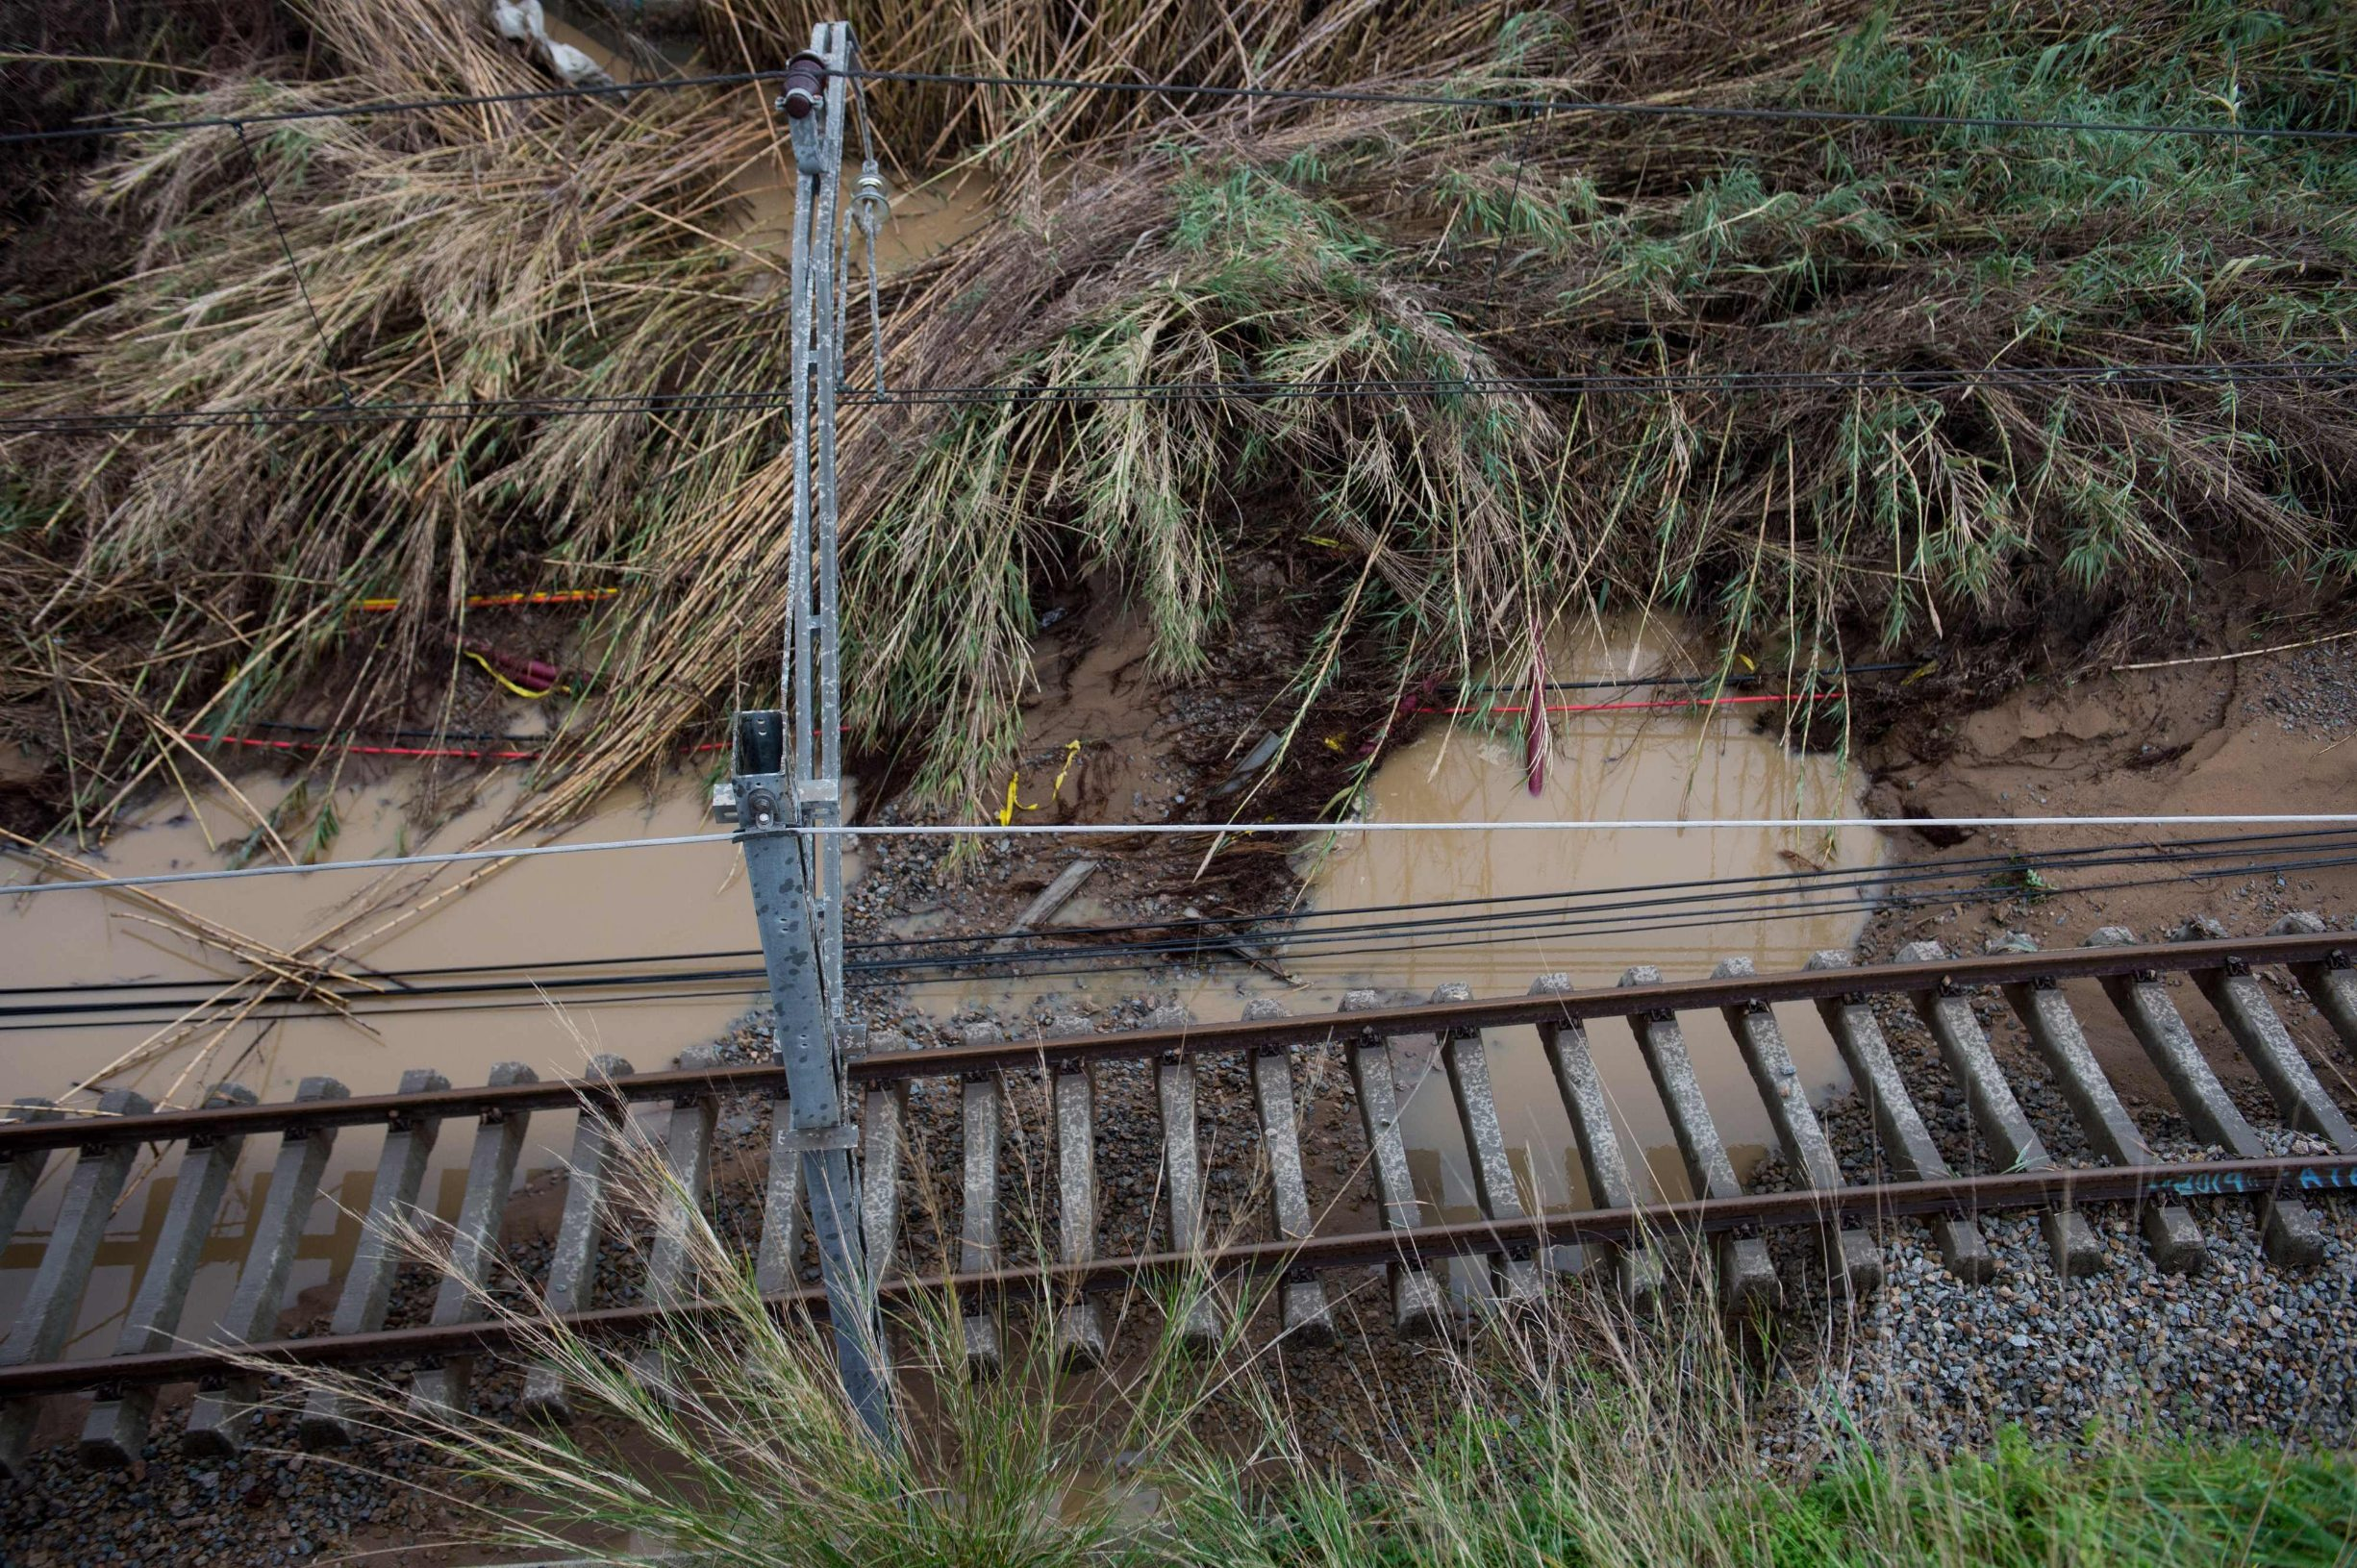 Flooded train tracks are pictured in Malgrat de Mar, near Girona on January 22, 2020, as storm Gloria batters Spanish eastern coast. - A winter storm which has killed three people lashed much of eastern Spain for a third day yesterday, cutting power, forcing the closure of schools and severing road and rail links. National weather agency Aemet placed most of northeastern Spain on alert because of the storm packing gusts of over 100 kilometres (60 miles) per hour, heavy snowfall, freezing rain and massive waves which smashed into seafront promenades, damaging shops and restaurants. (Photo by Josep LAGO / AFP)